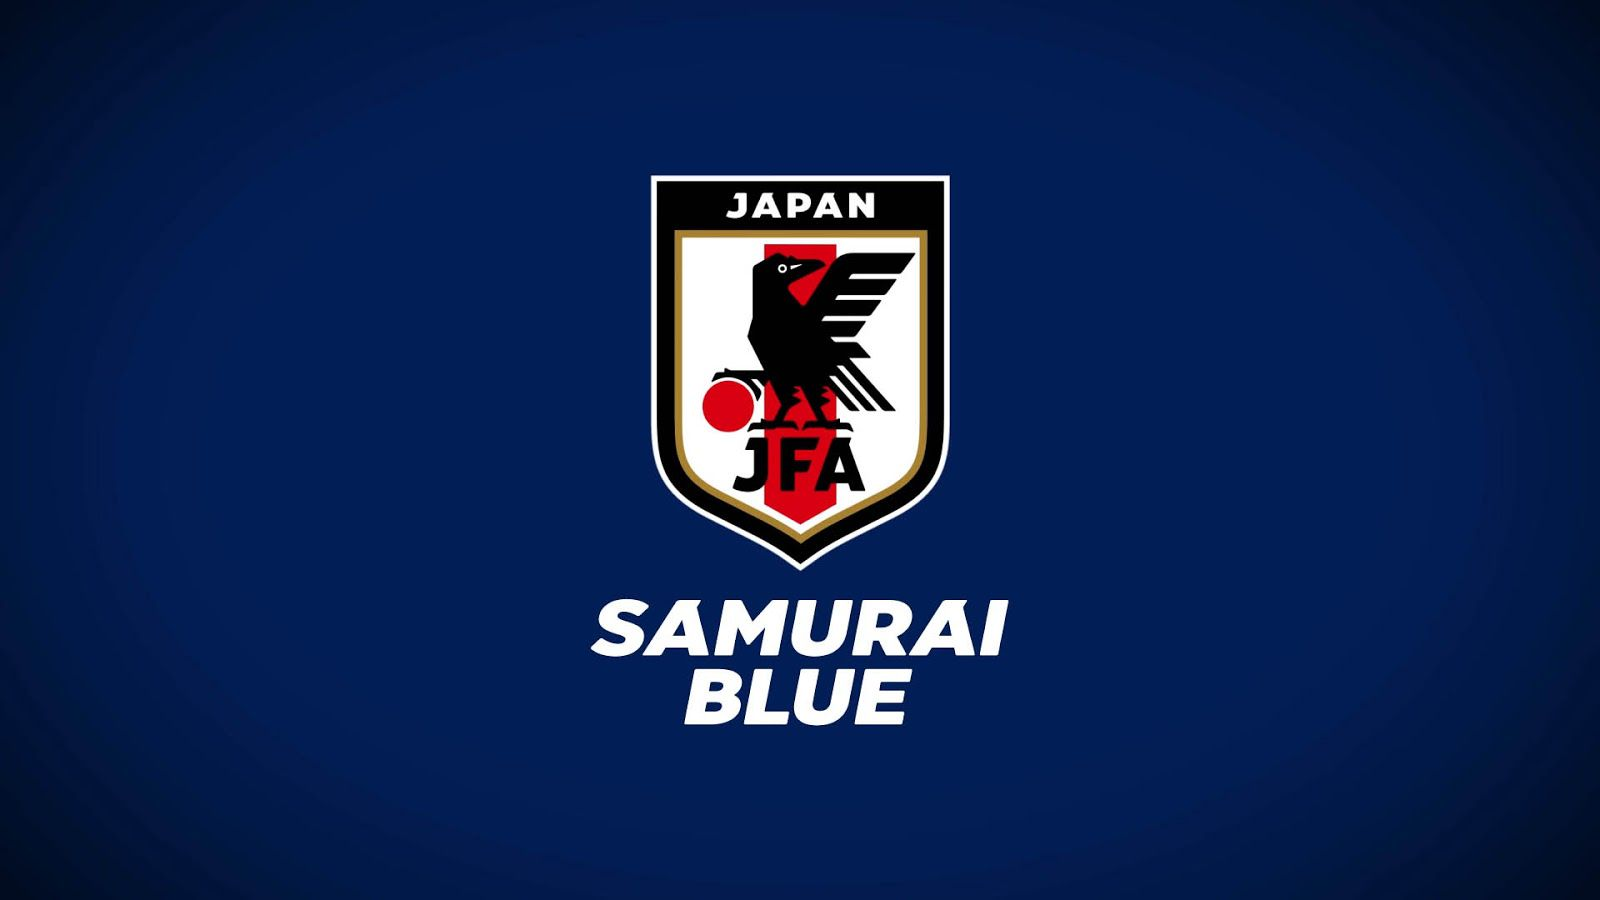 The New Japan S National Team Logo